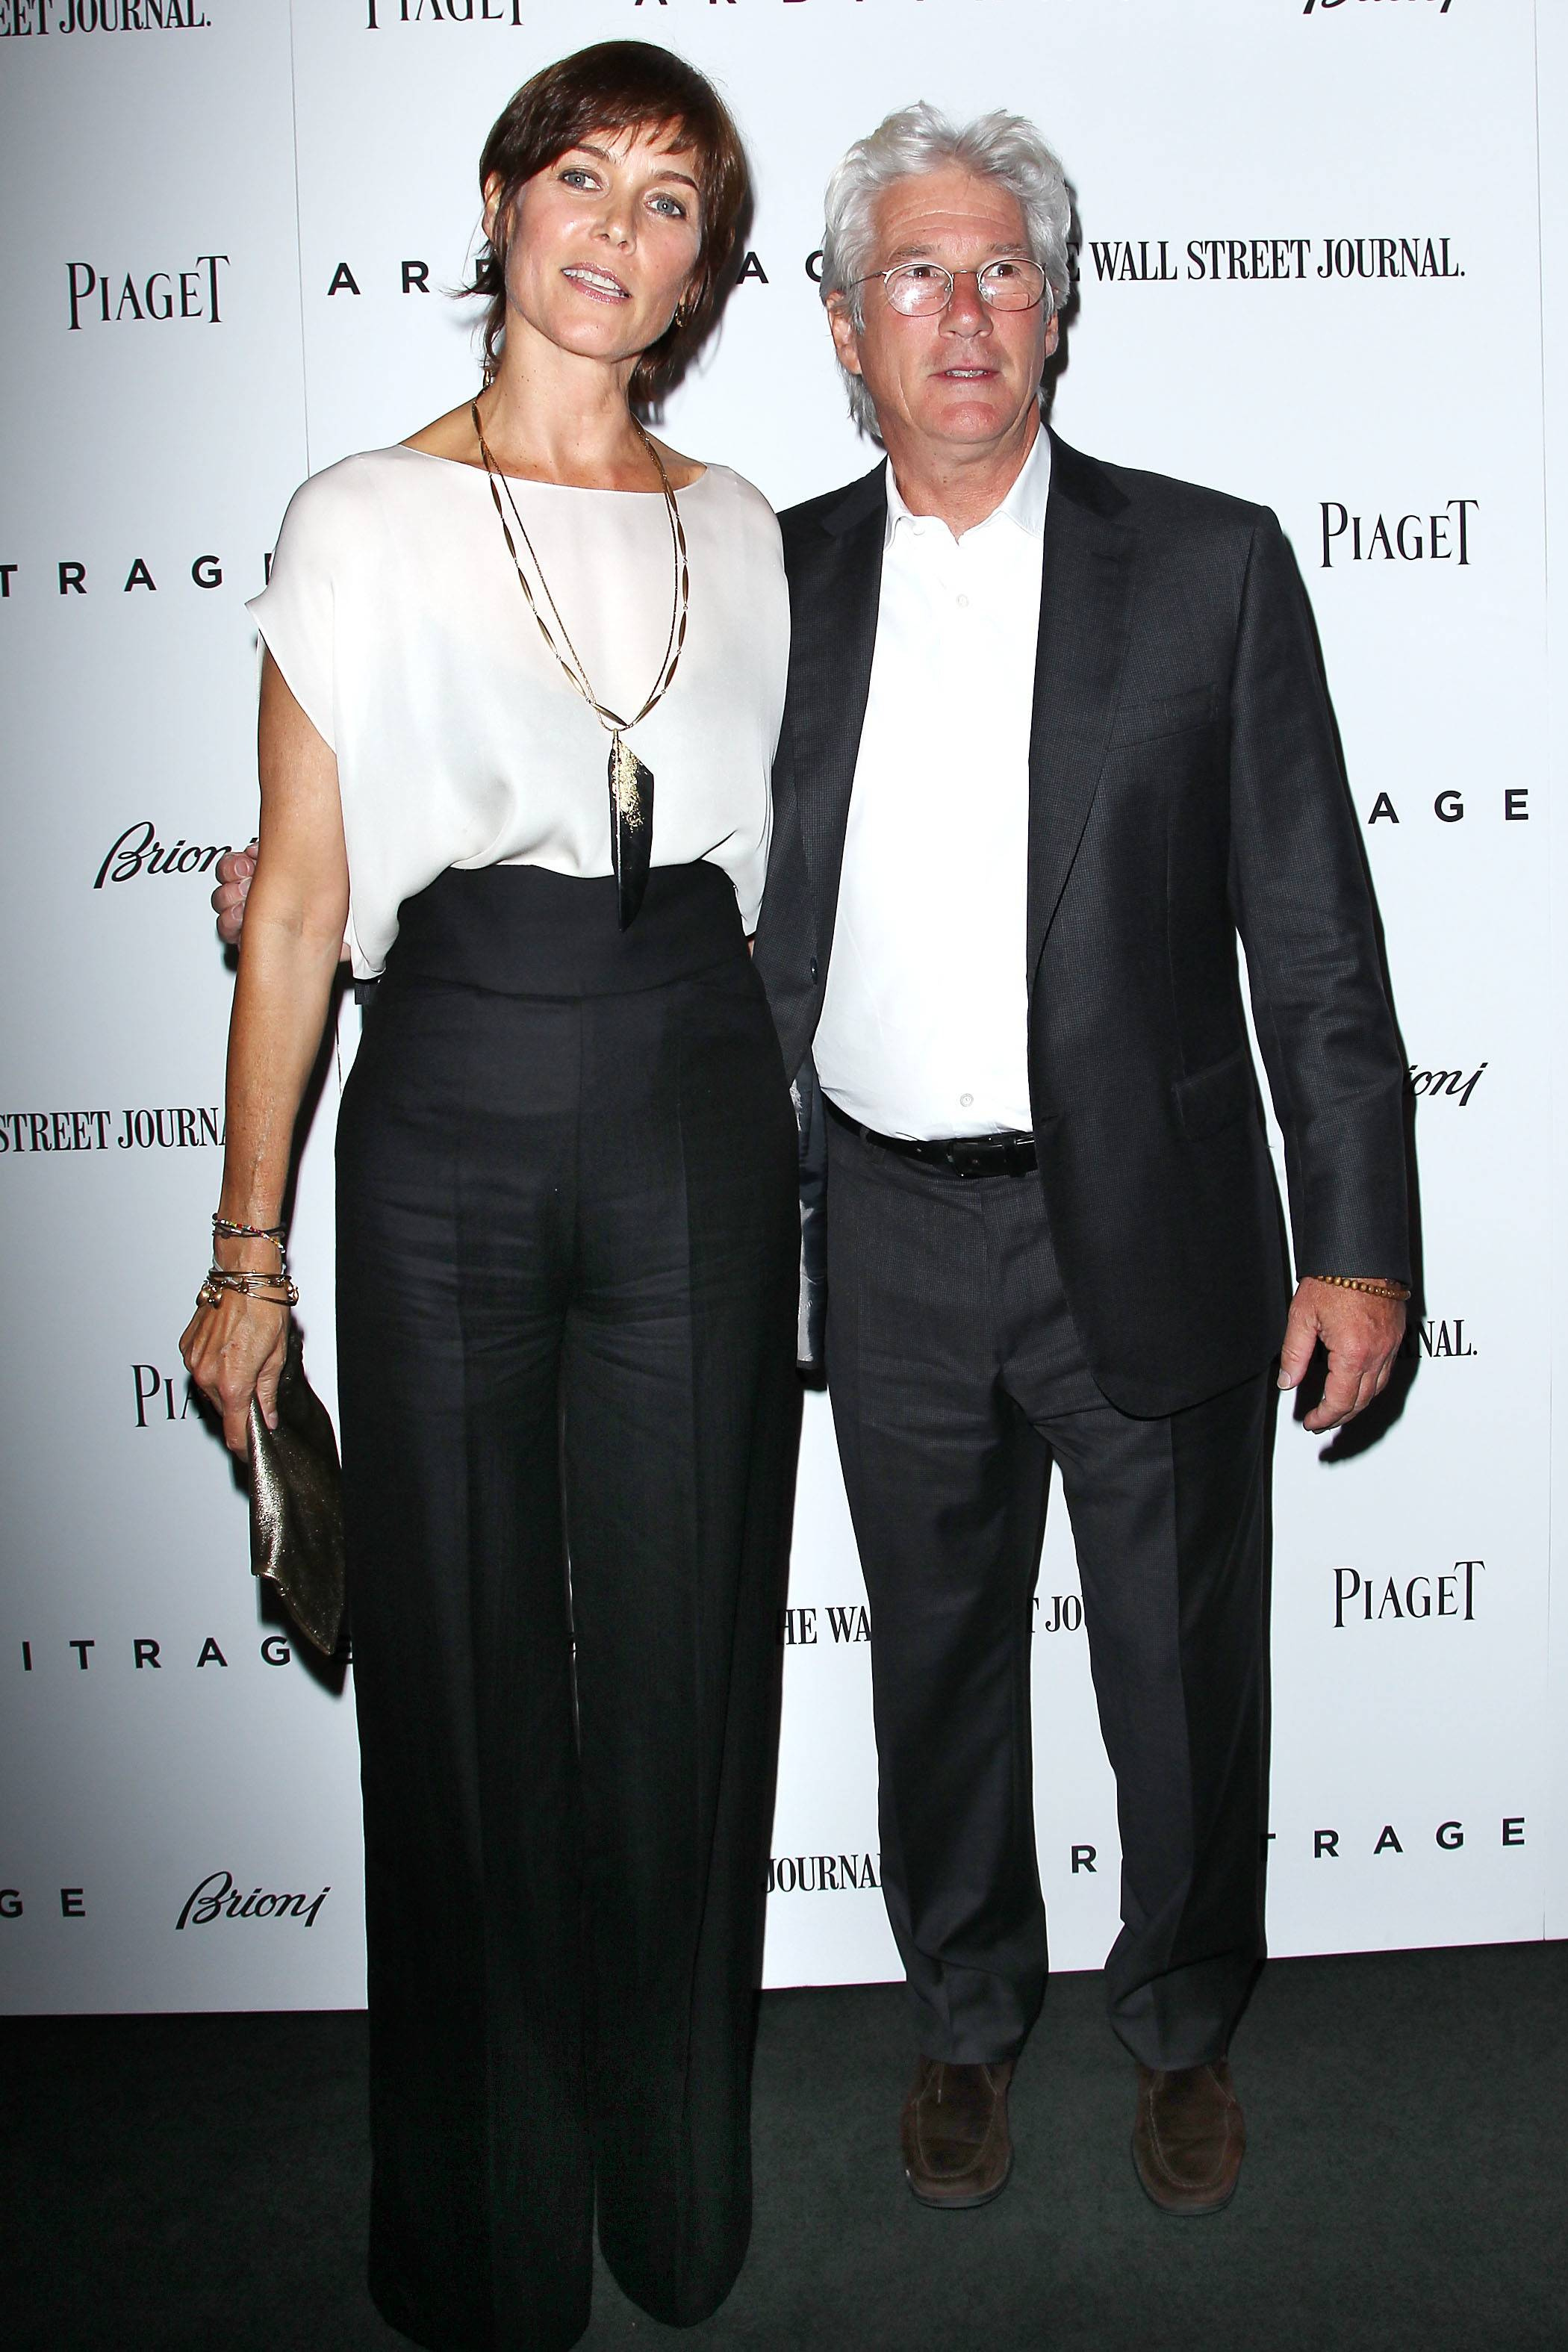 The Wall Street Journal and Piaget Present the NY Premiere of ARBITRAGE